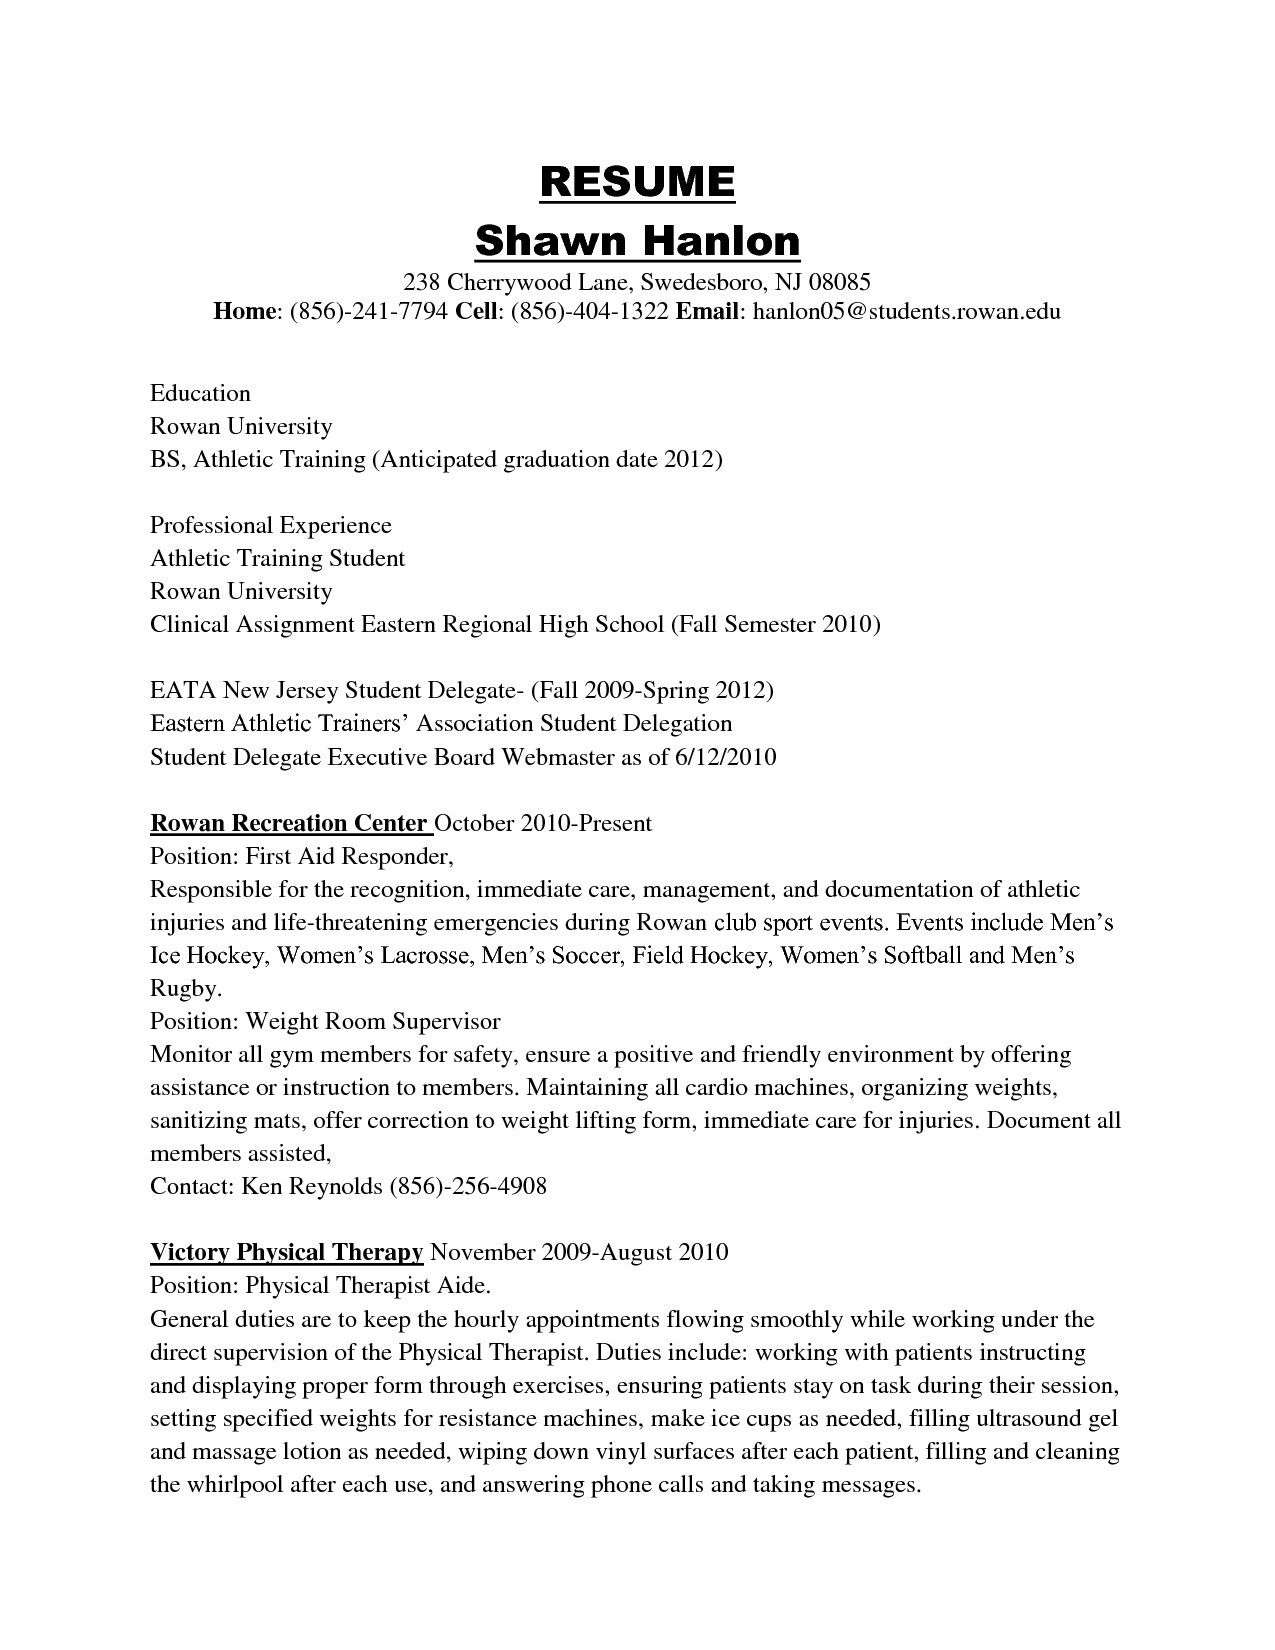 Sample Student Retention Letter Template - Personal Training Resume Template New American Resume Sample New